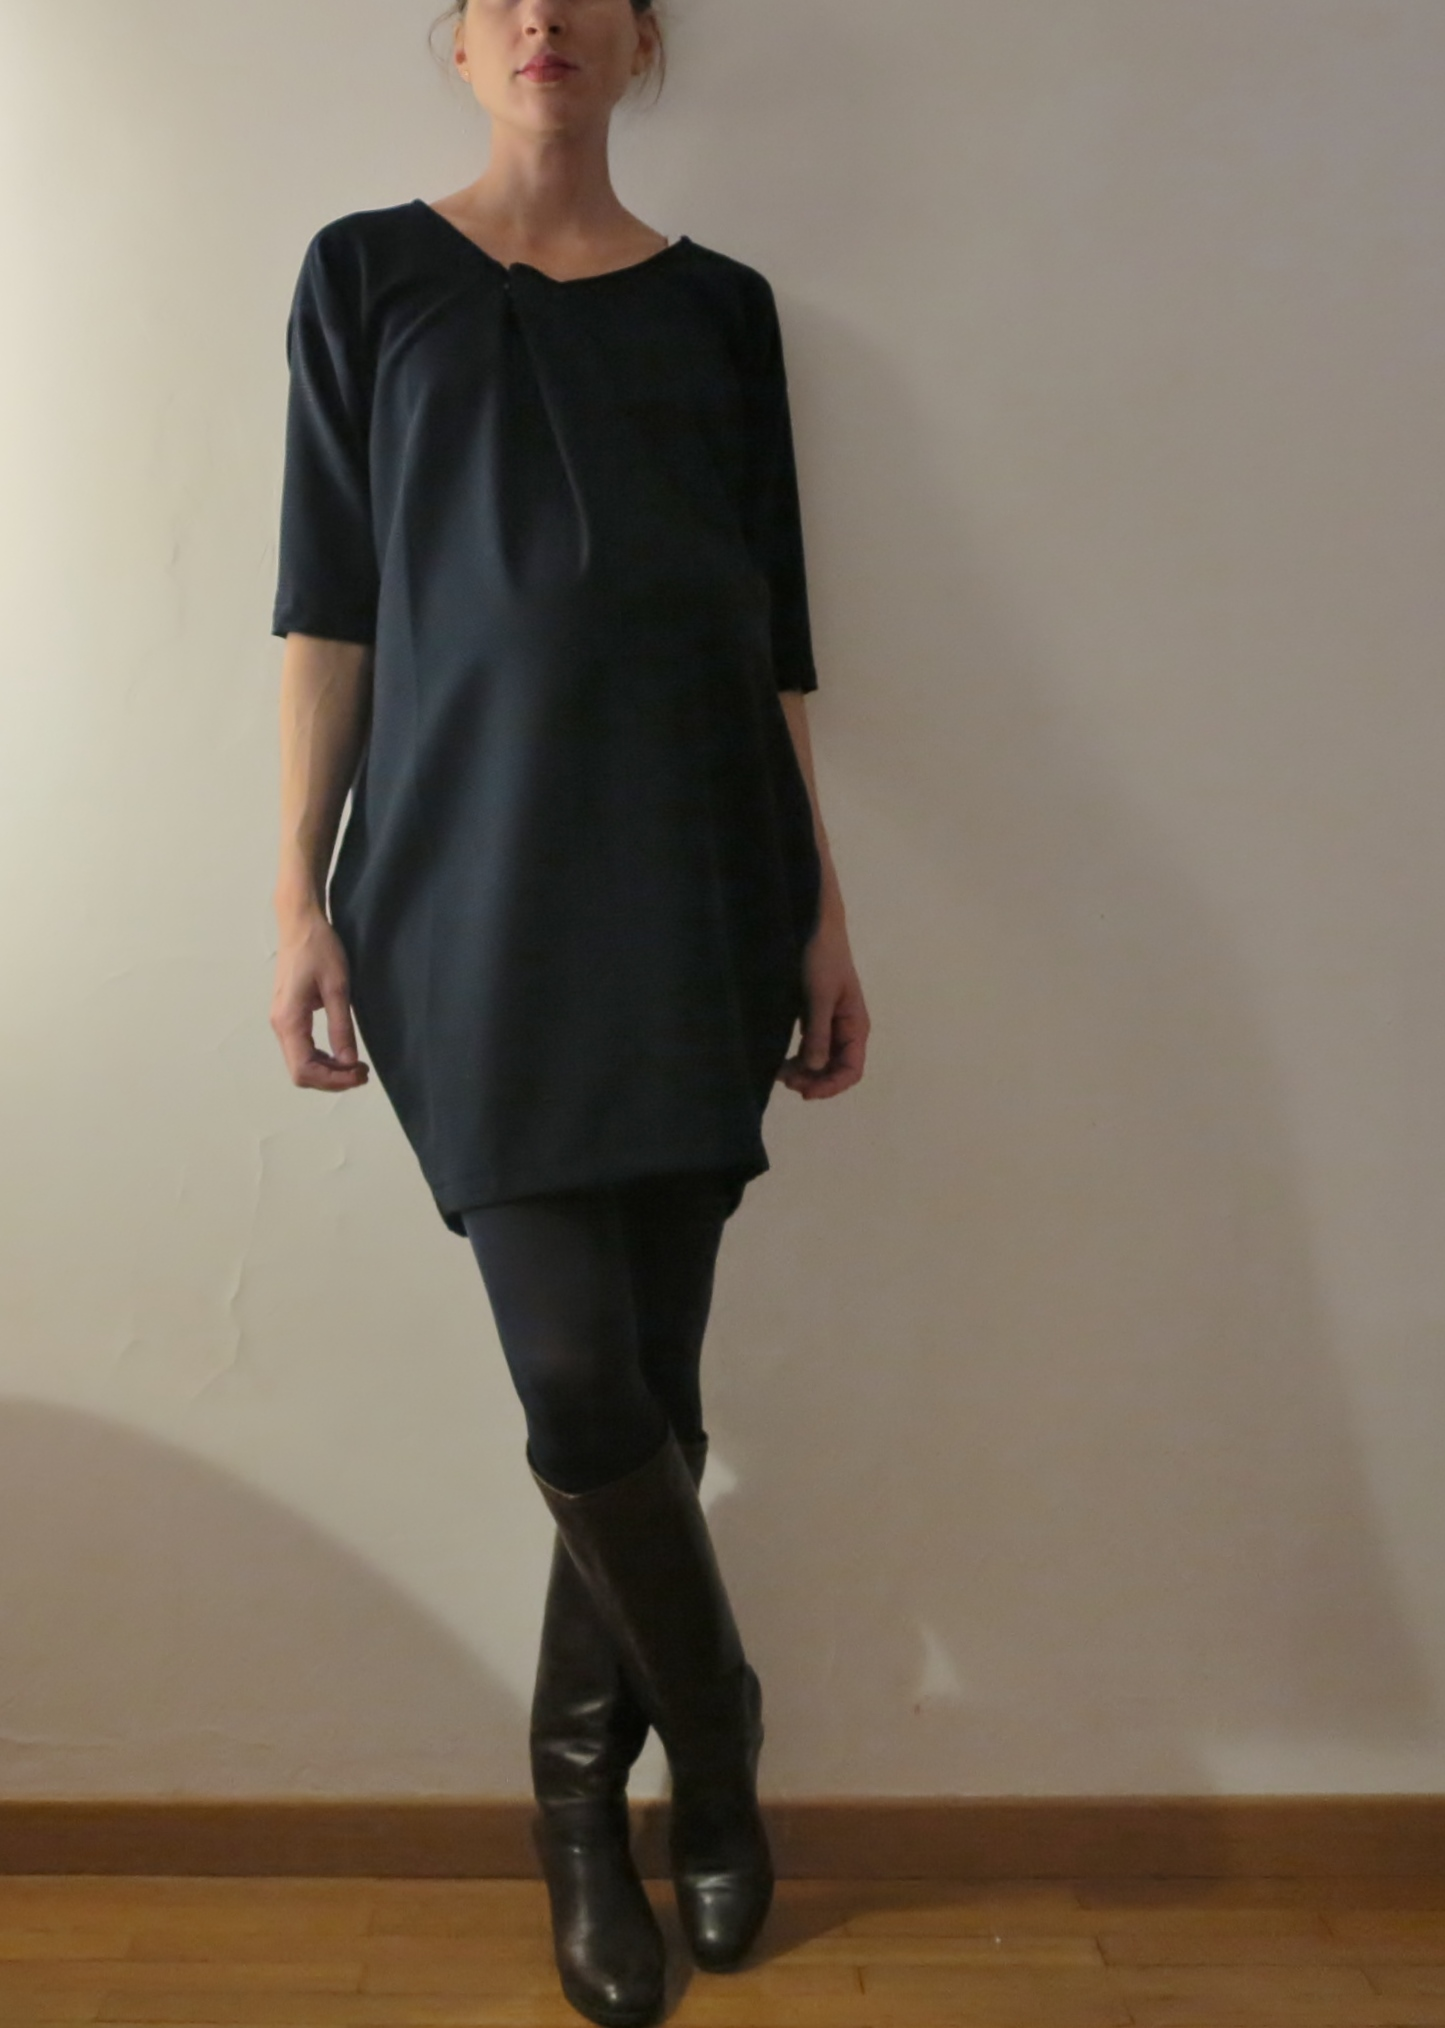 63efba7c28c7d I have made it longer to become a dress, inspired by Portia version. I have  chosen the small size, but added 8 cm in the front to give room to the  growing ...